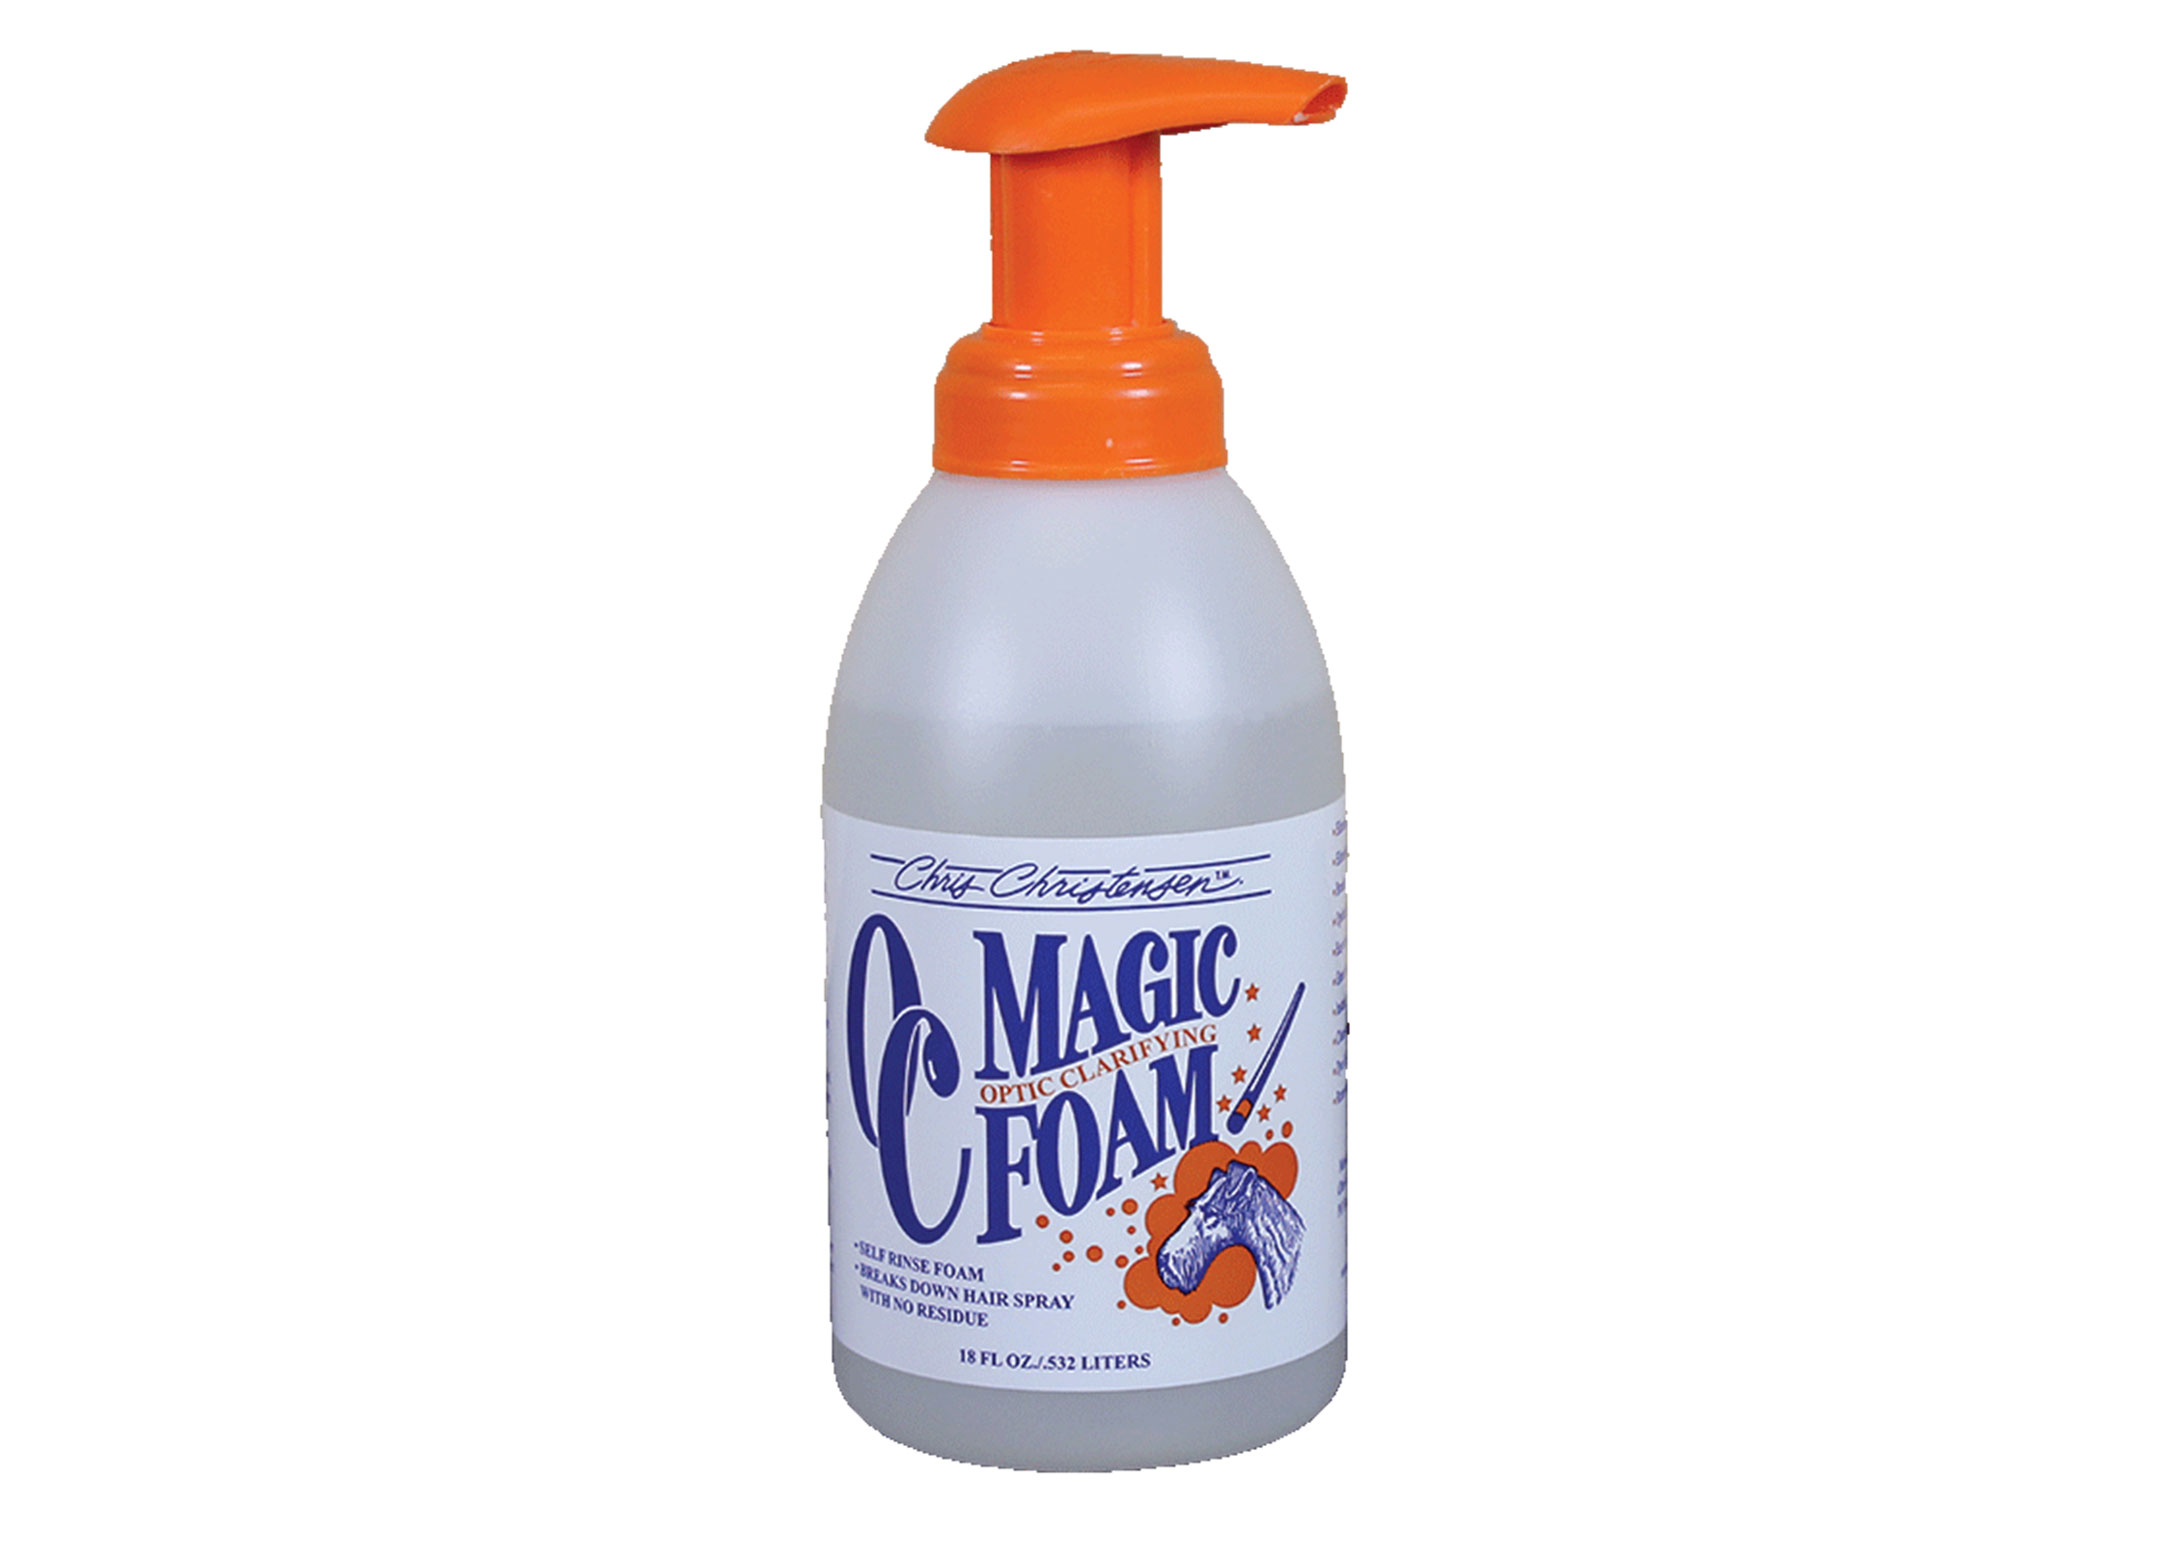 Chris Christensen Systems Optic Clarifier Magic Foam Self-Rinse For Dogs, Cats And Horses